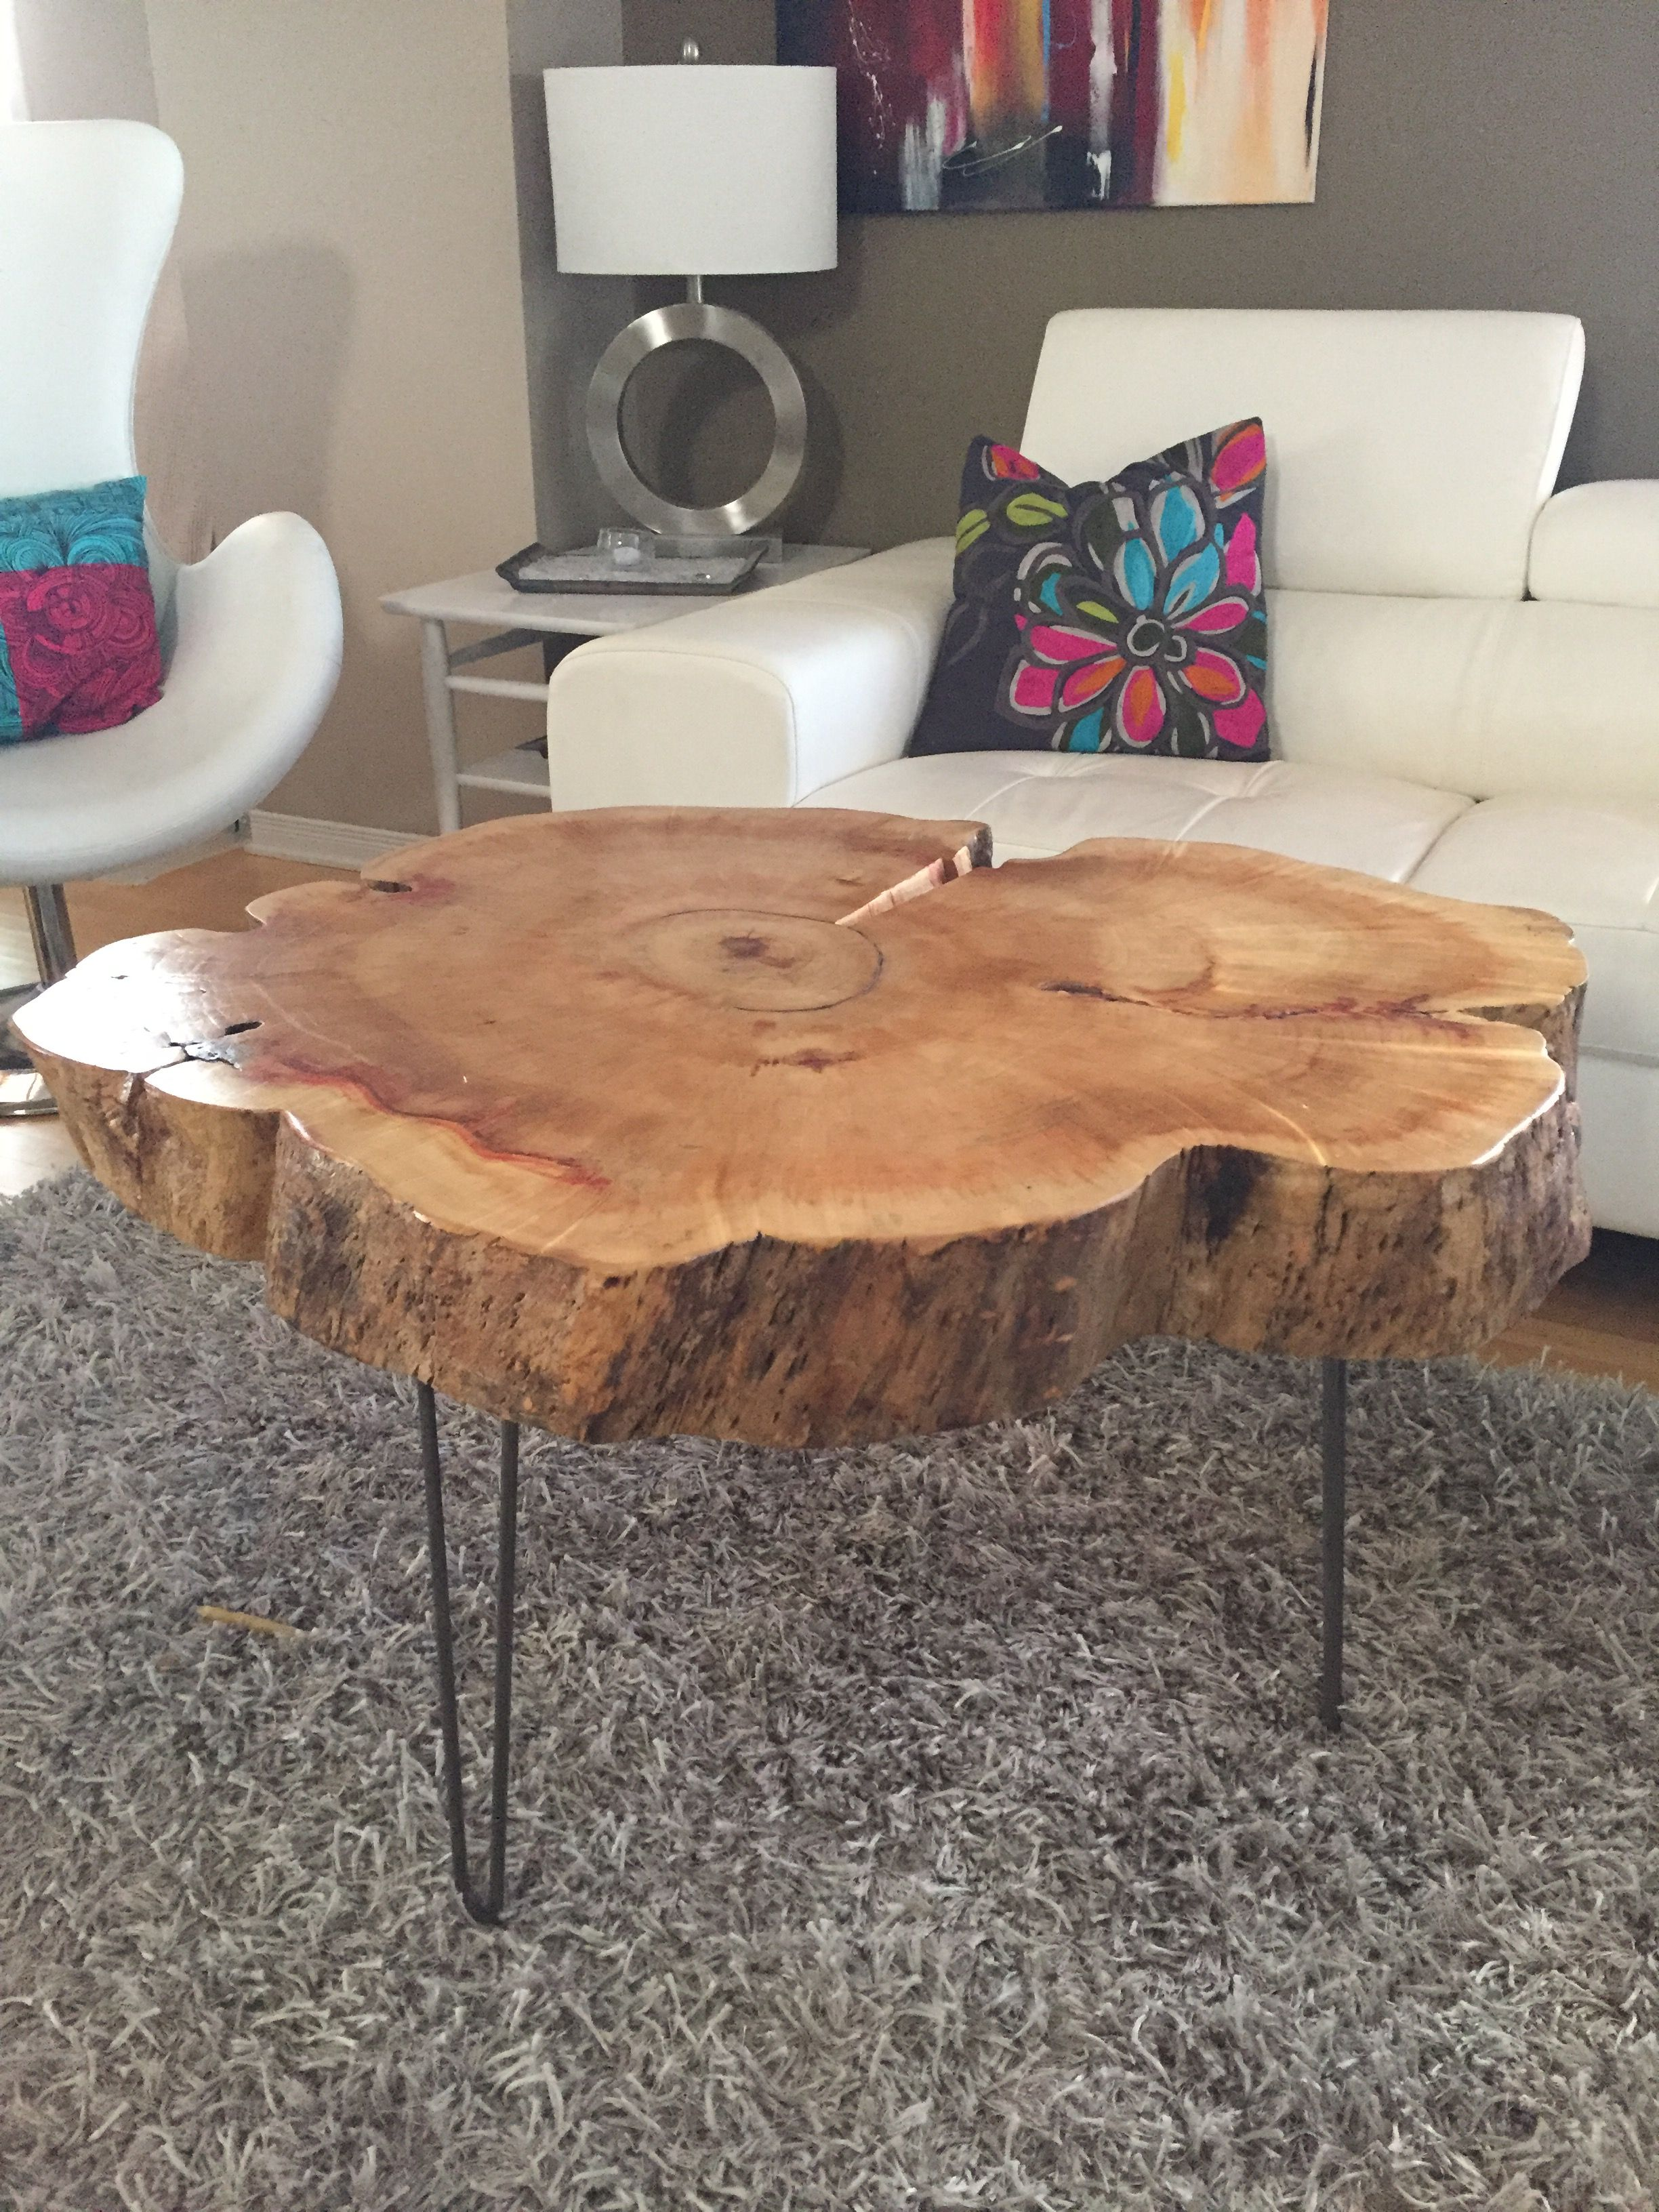 Küchendesign einfach aber elegant tree trunk table with metal legs wood coffee table with hairpin